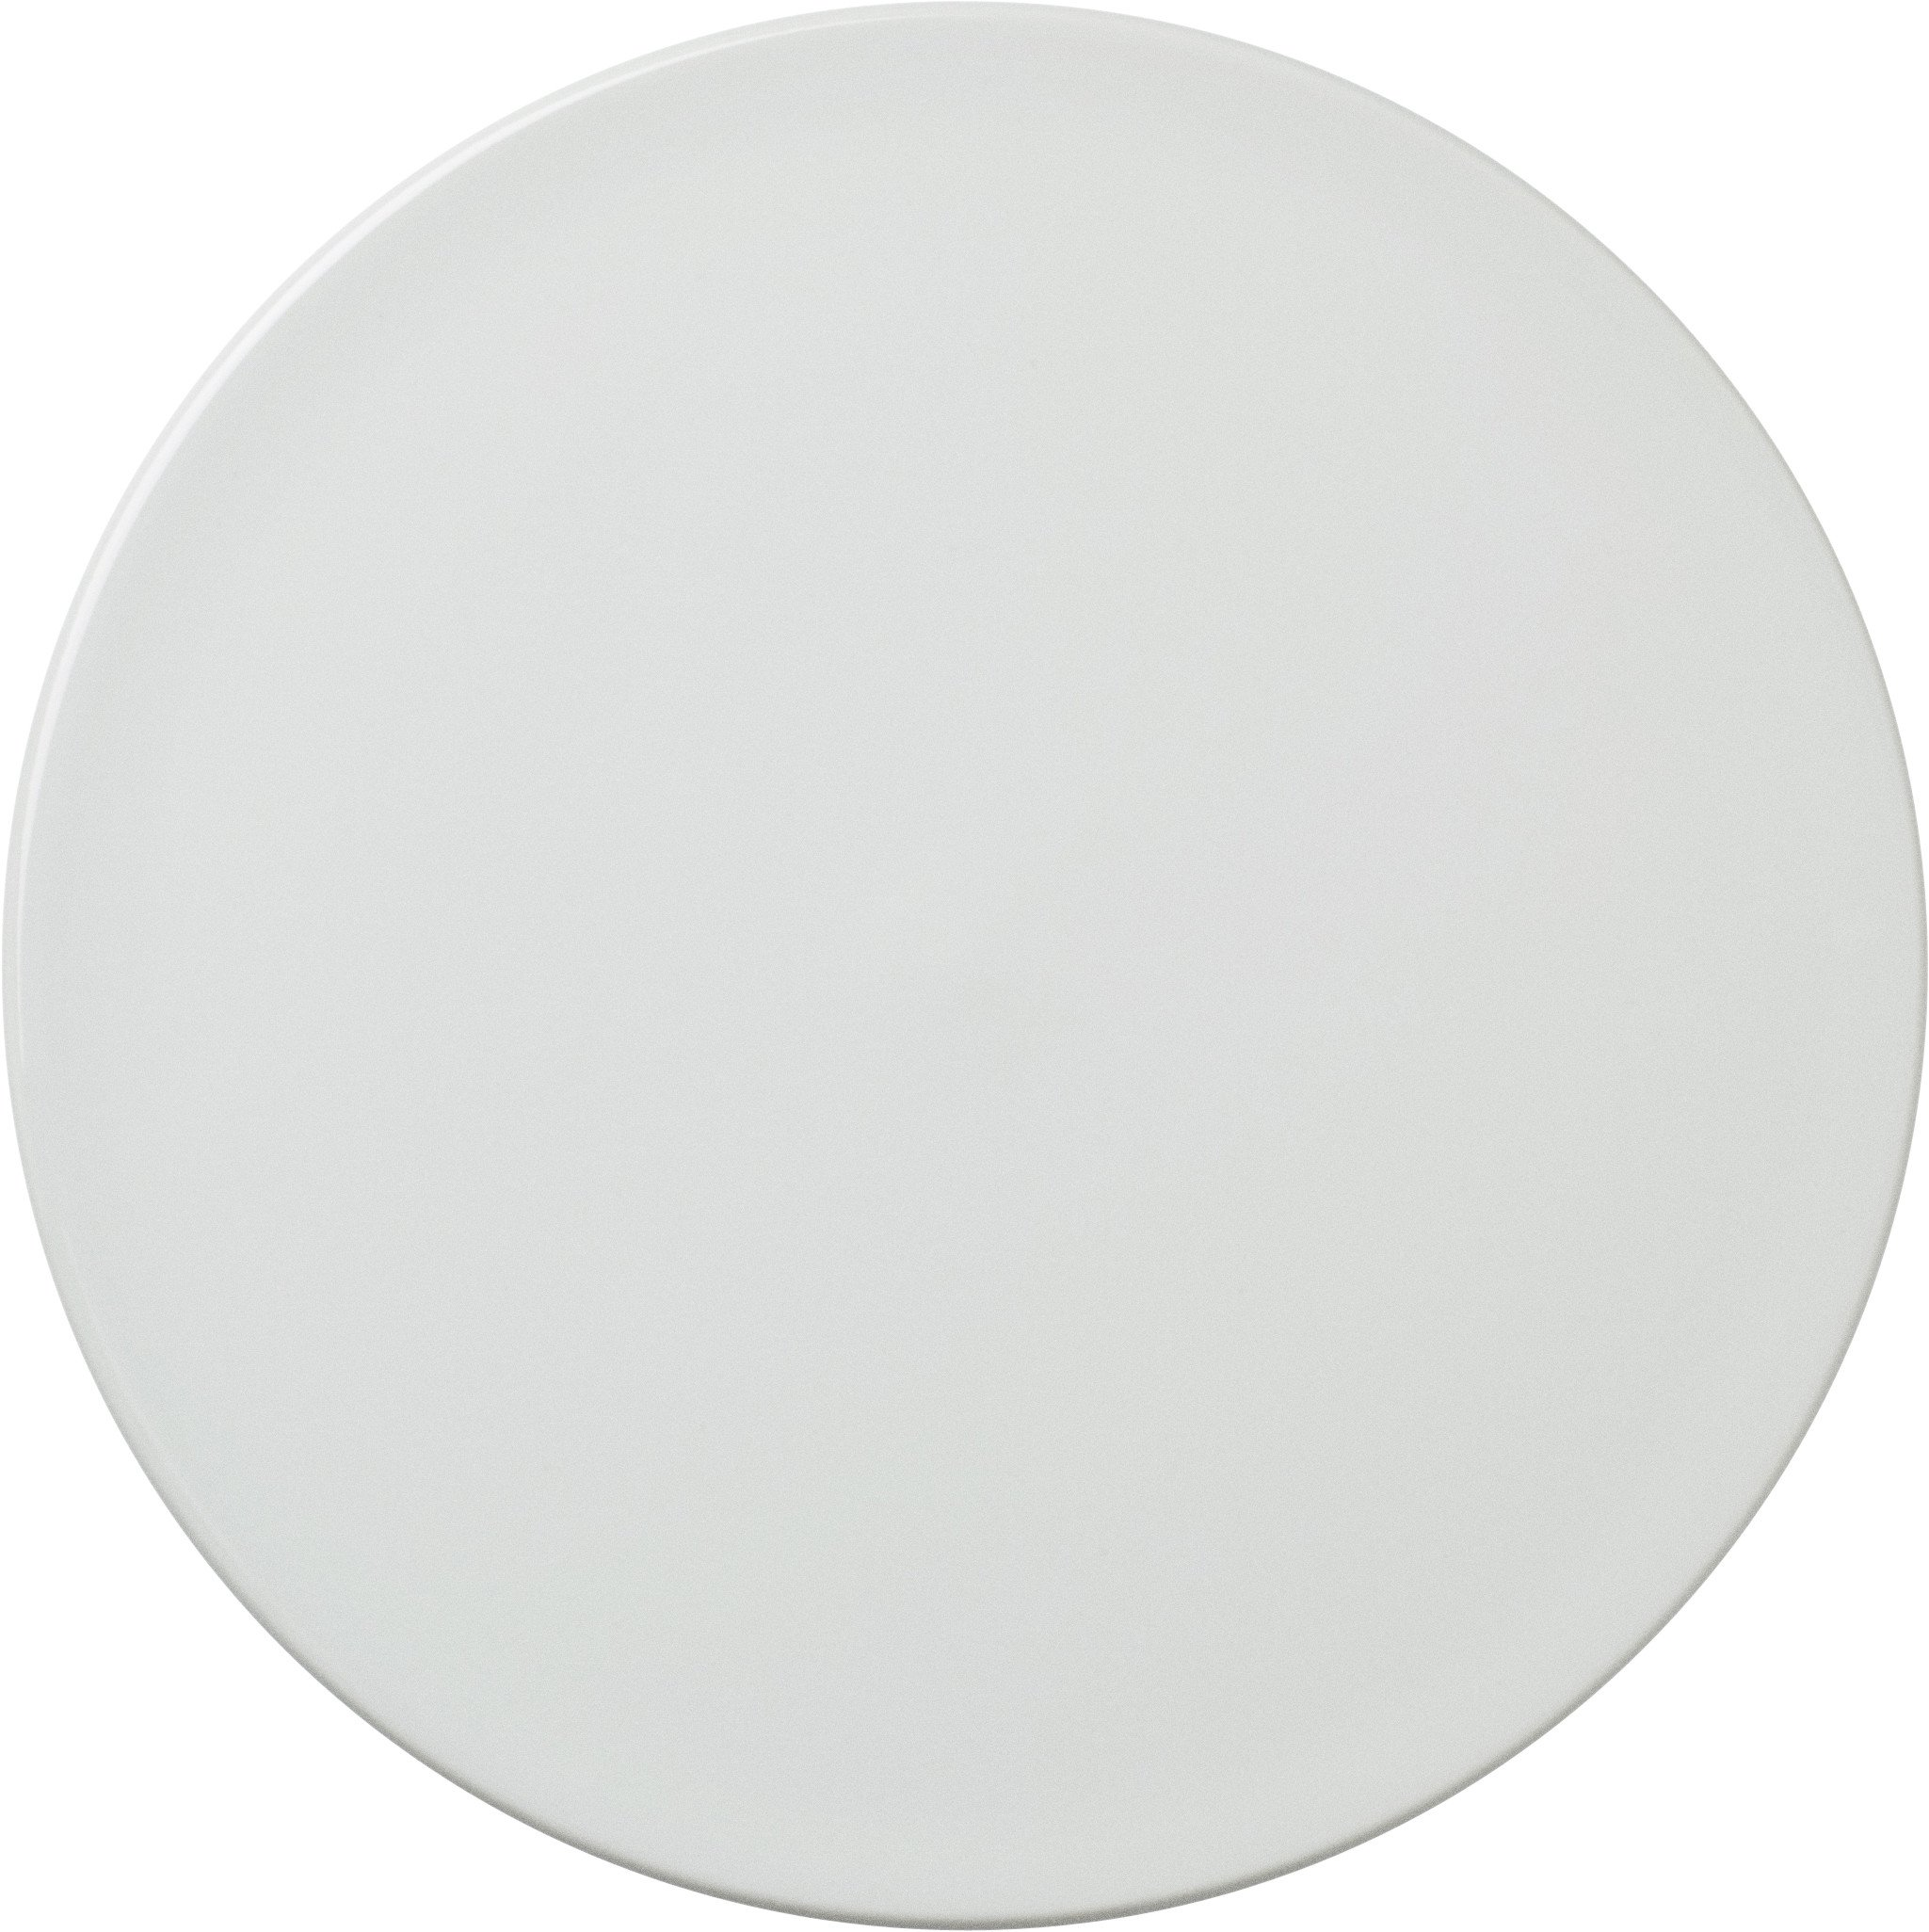 New Norm Plate/Lid White Ø 21,5cm by Norm Architects for Menu